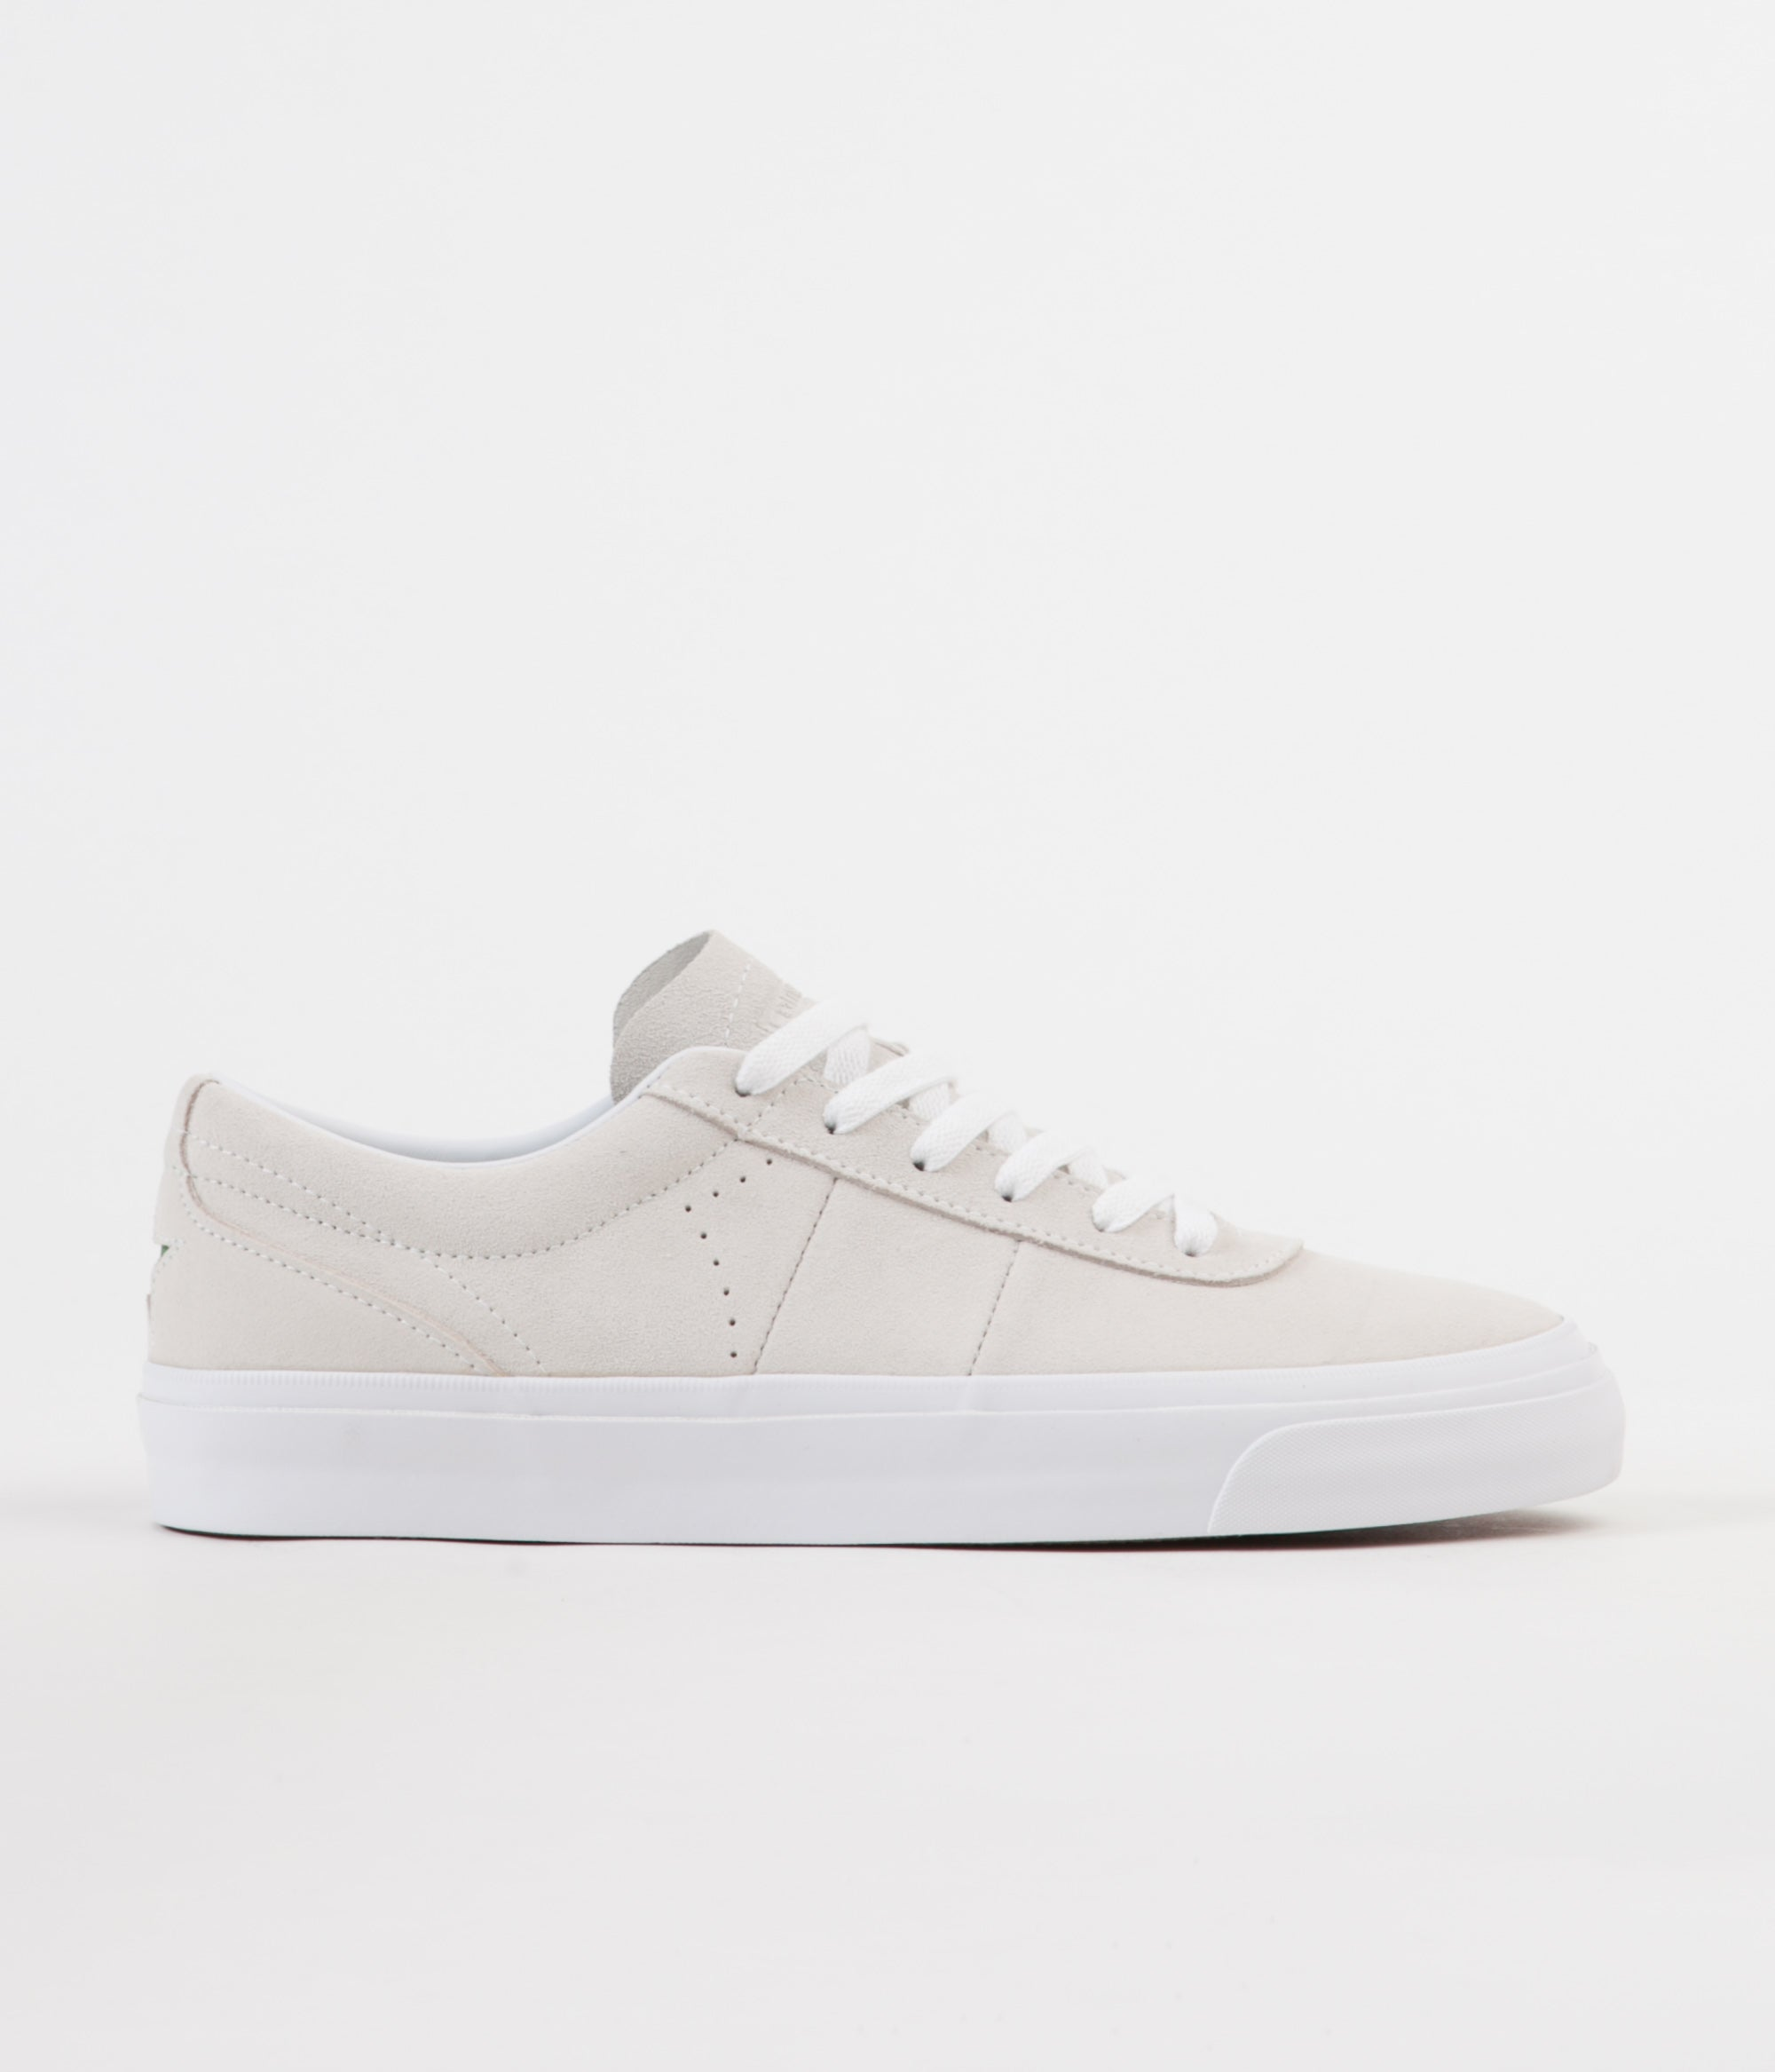 Converse One Star CC Pro Ox Shoes - White   Green   White  d70ce81cf